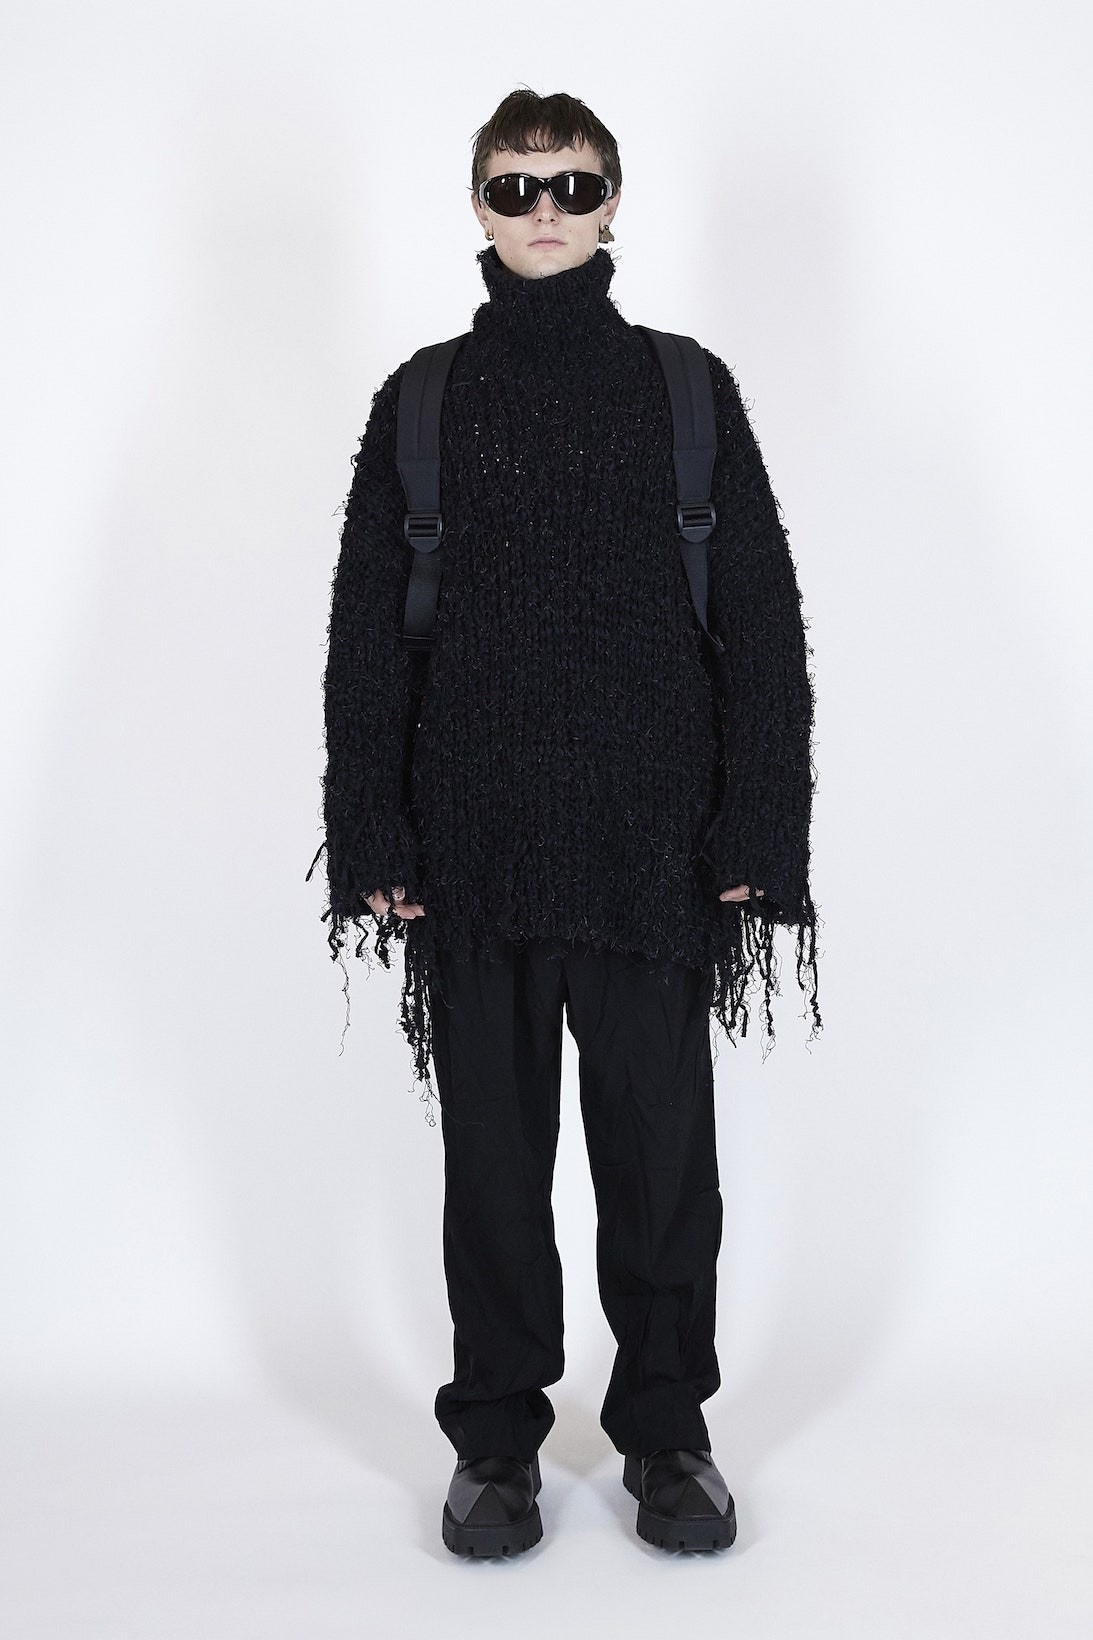 Balenciaga Summer 2021 Pre-Collection